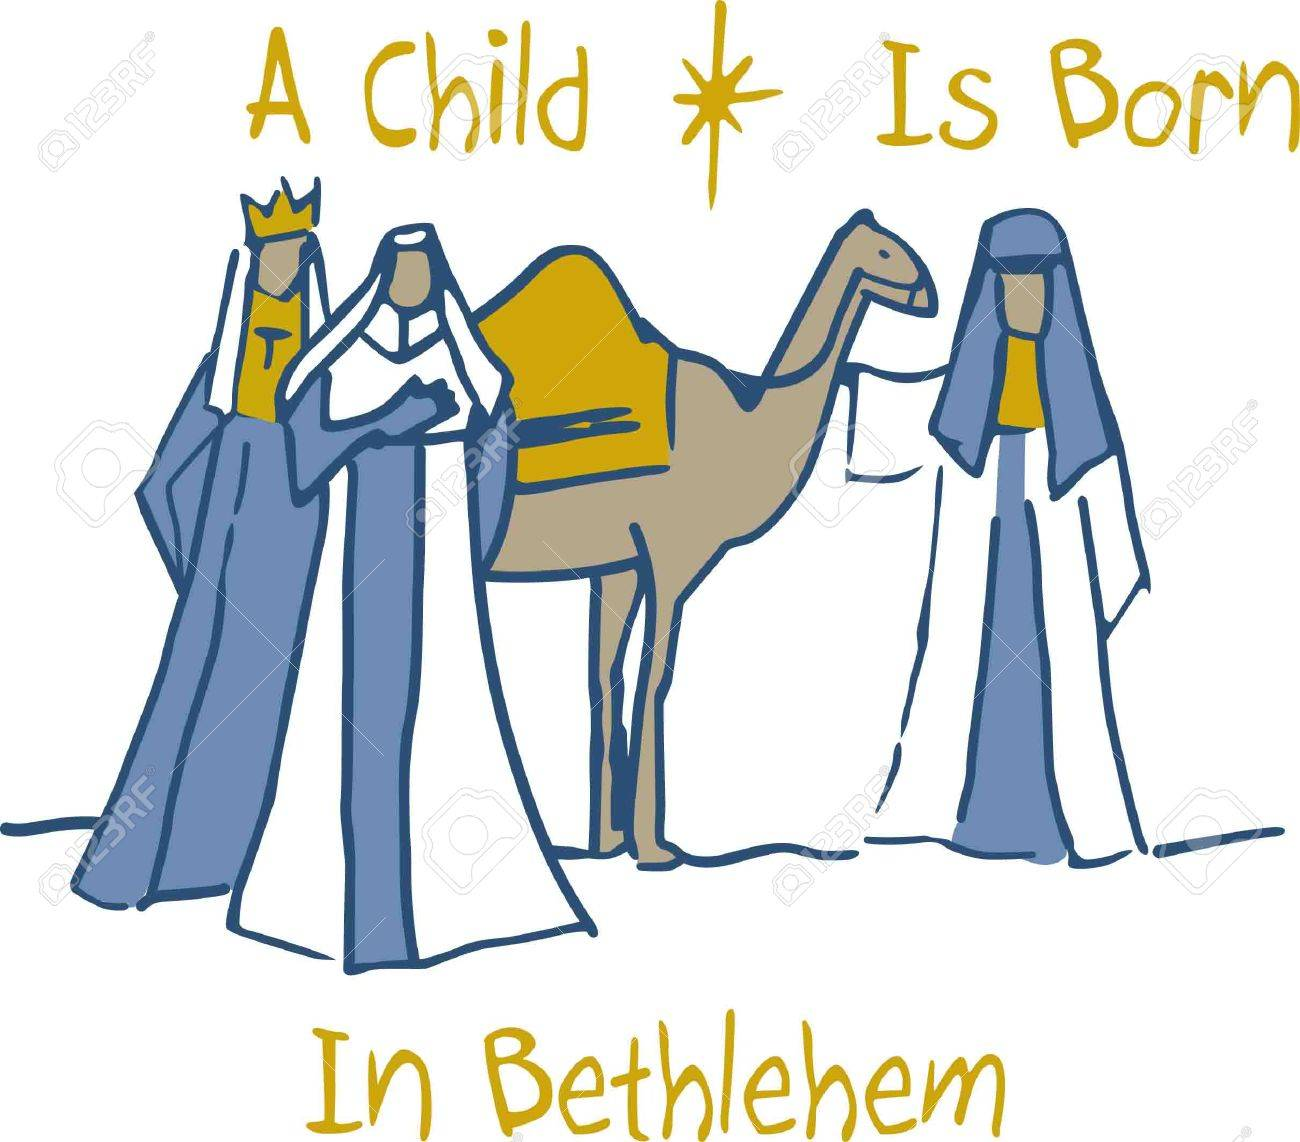 Baby jesus gifts from the three magic kings Vector Image